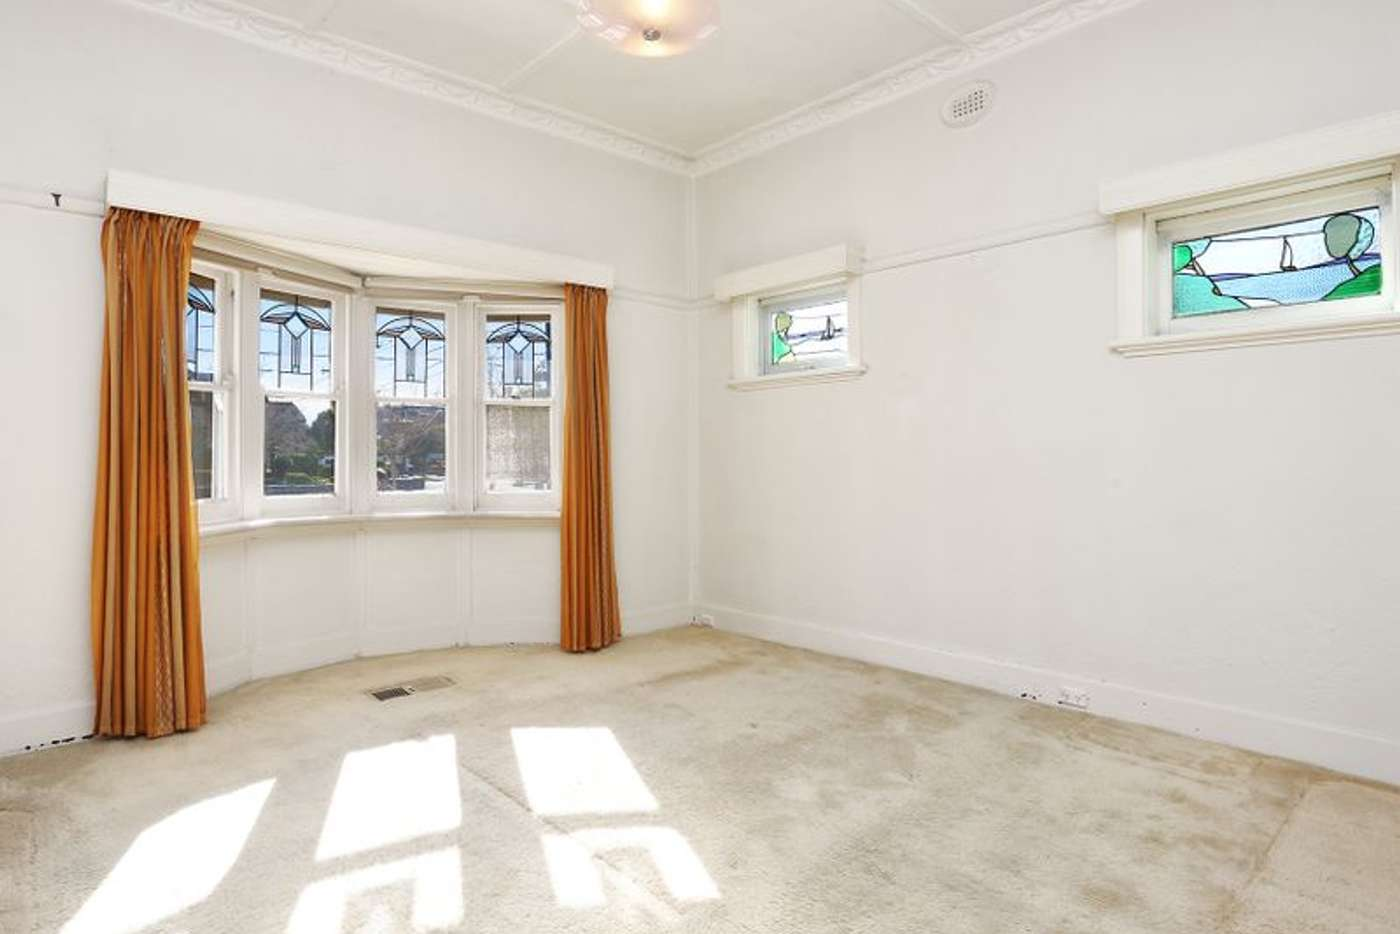 Fifth view of Homely house listing, 224 Glenlyon Road, Brunswick East VIC 3057